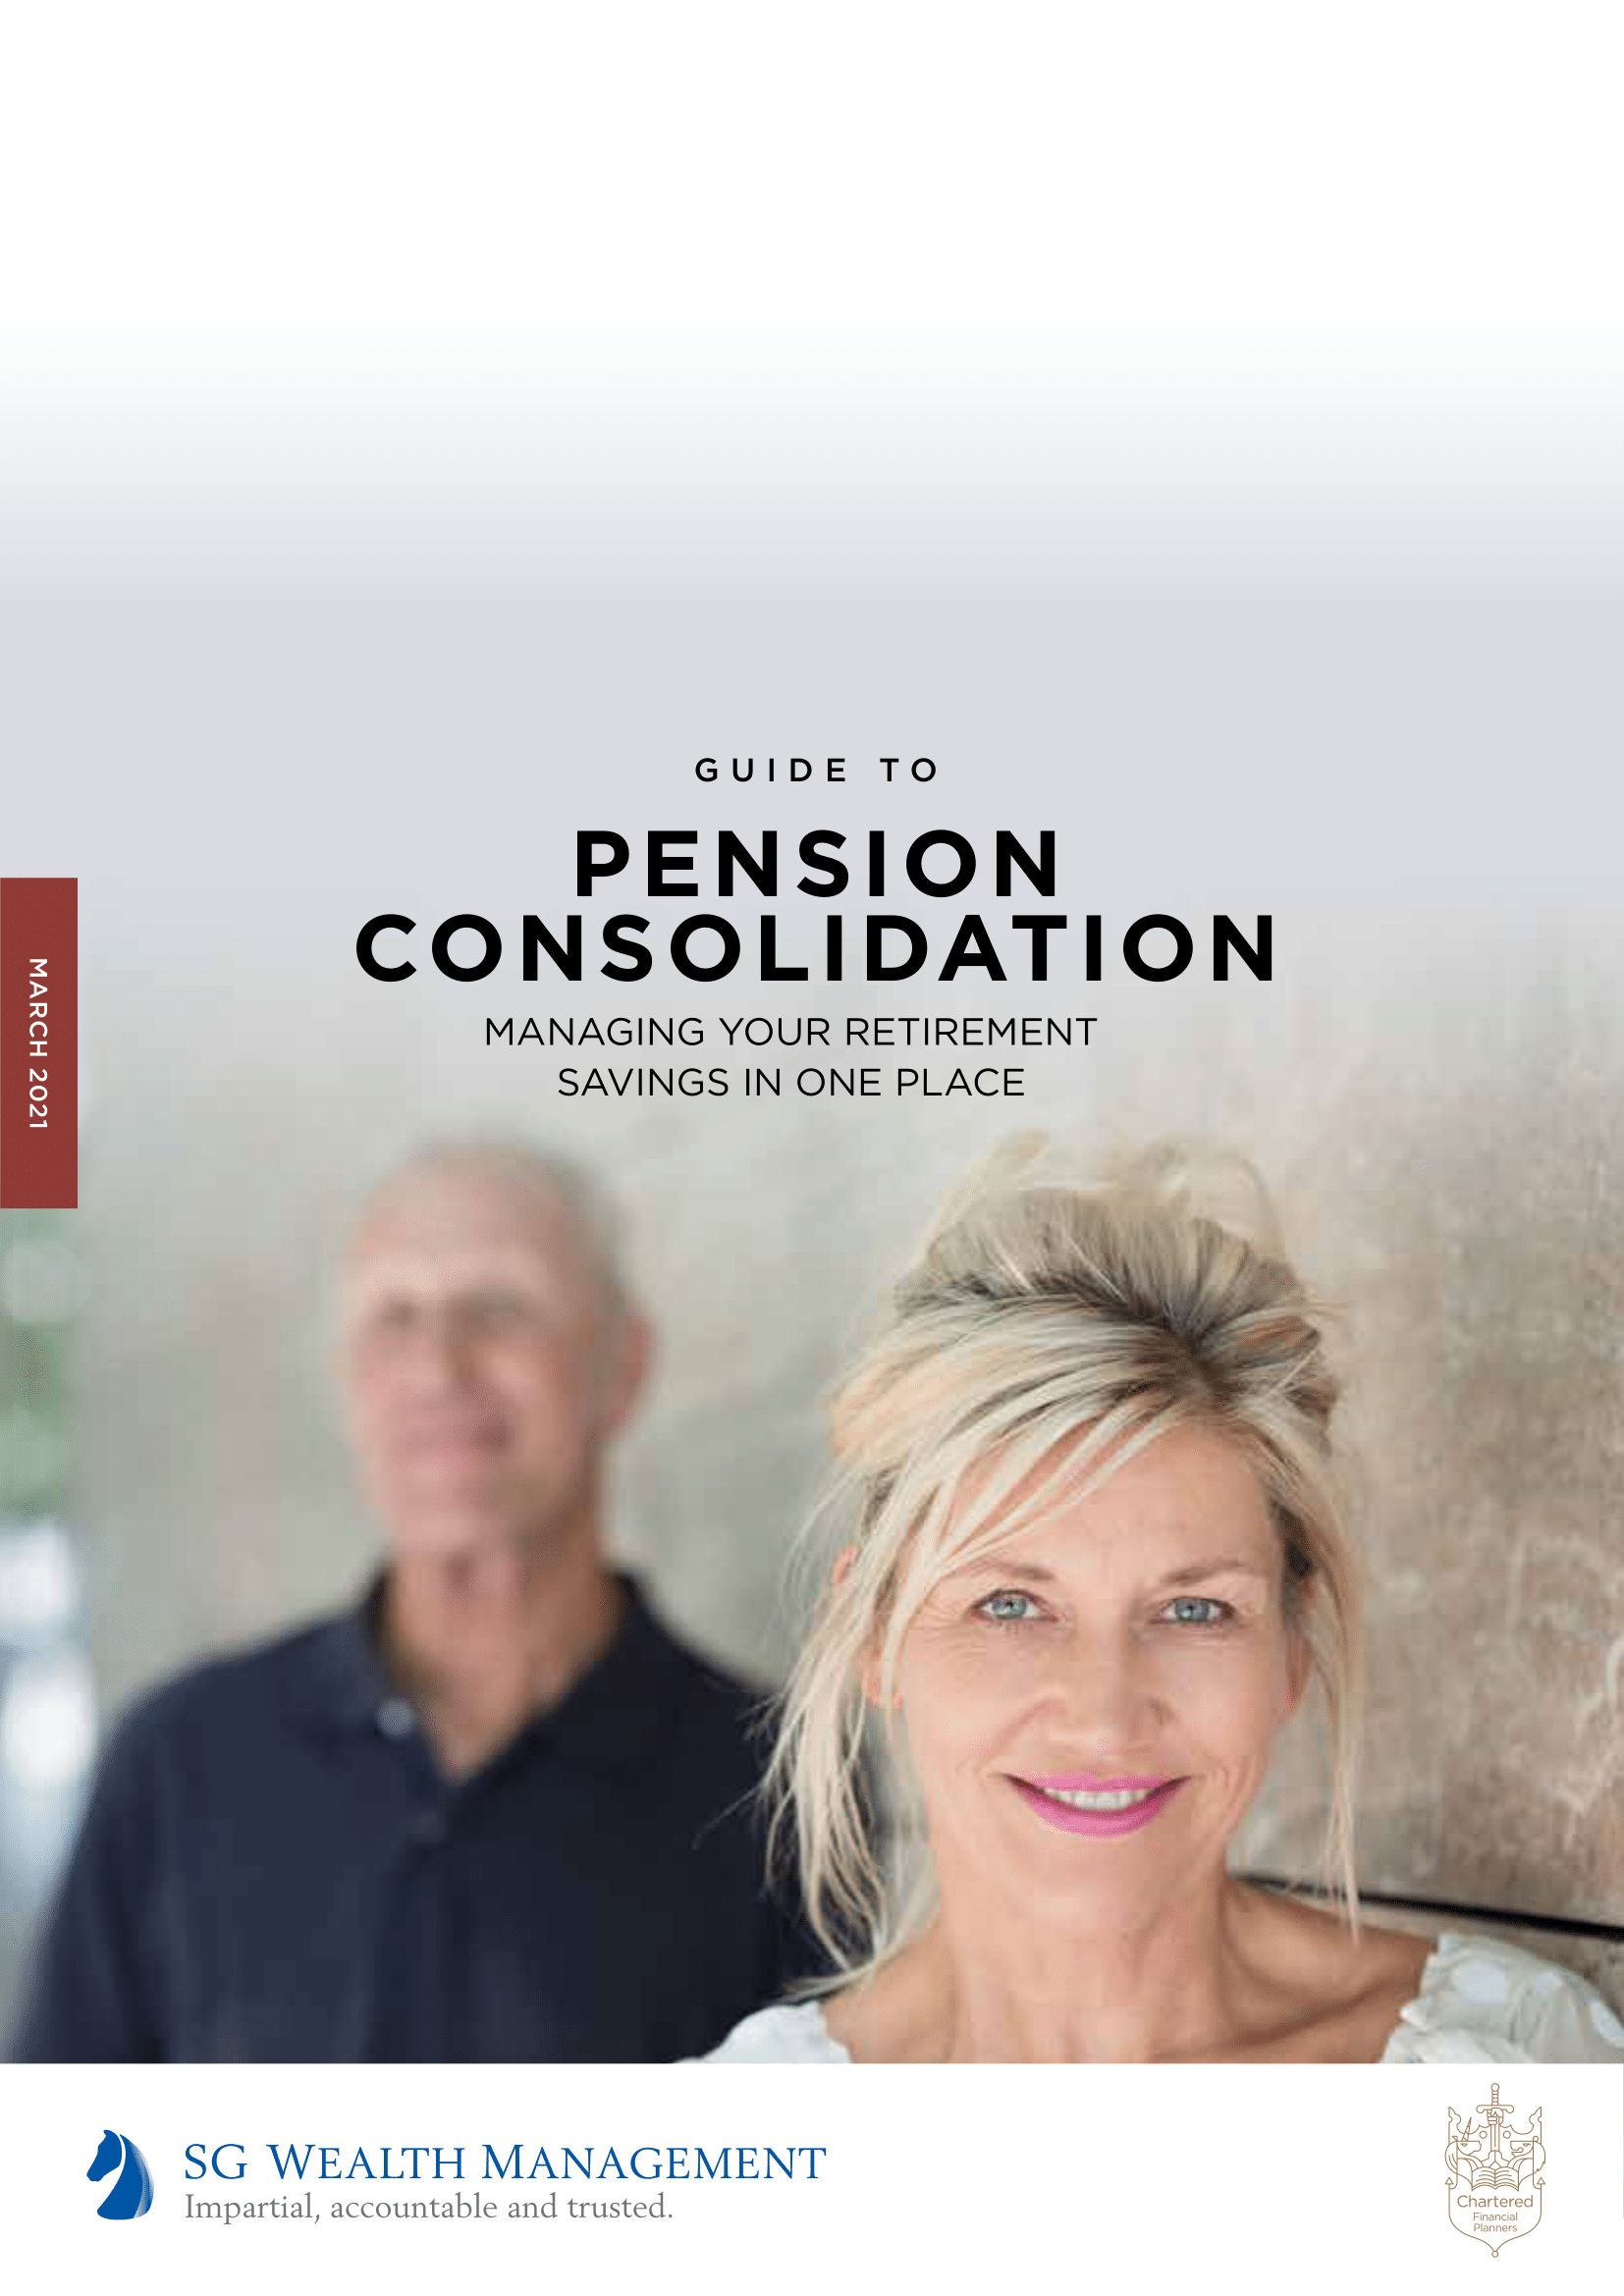 sgwm-guide-to-pension-consolidation